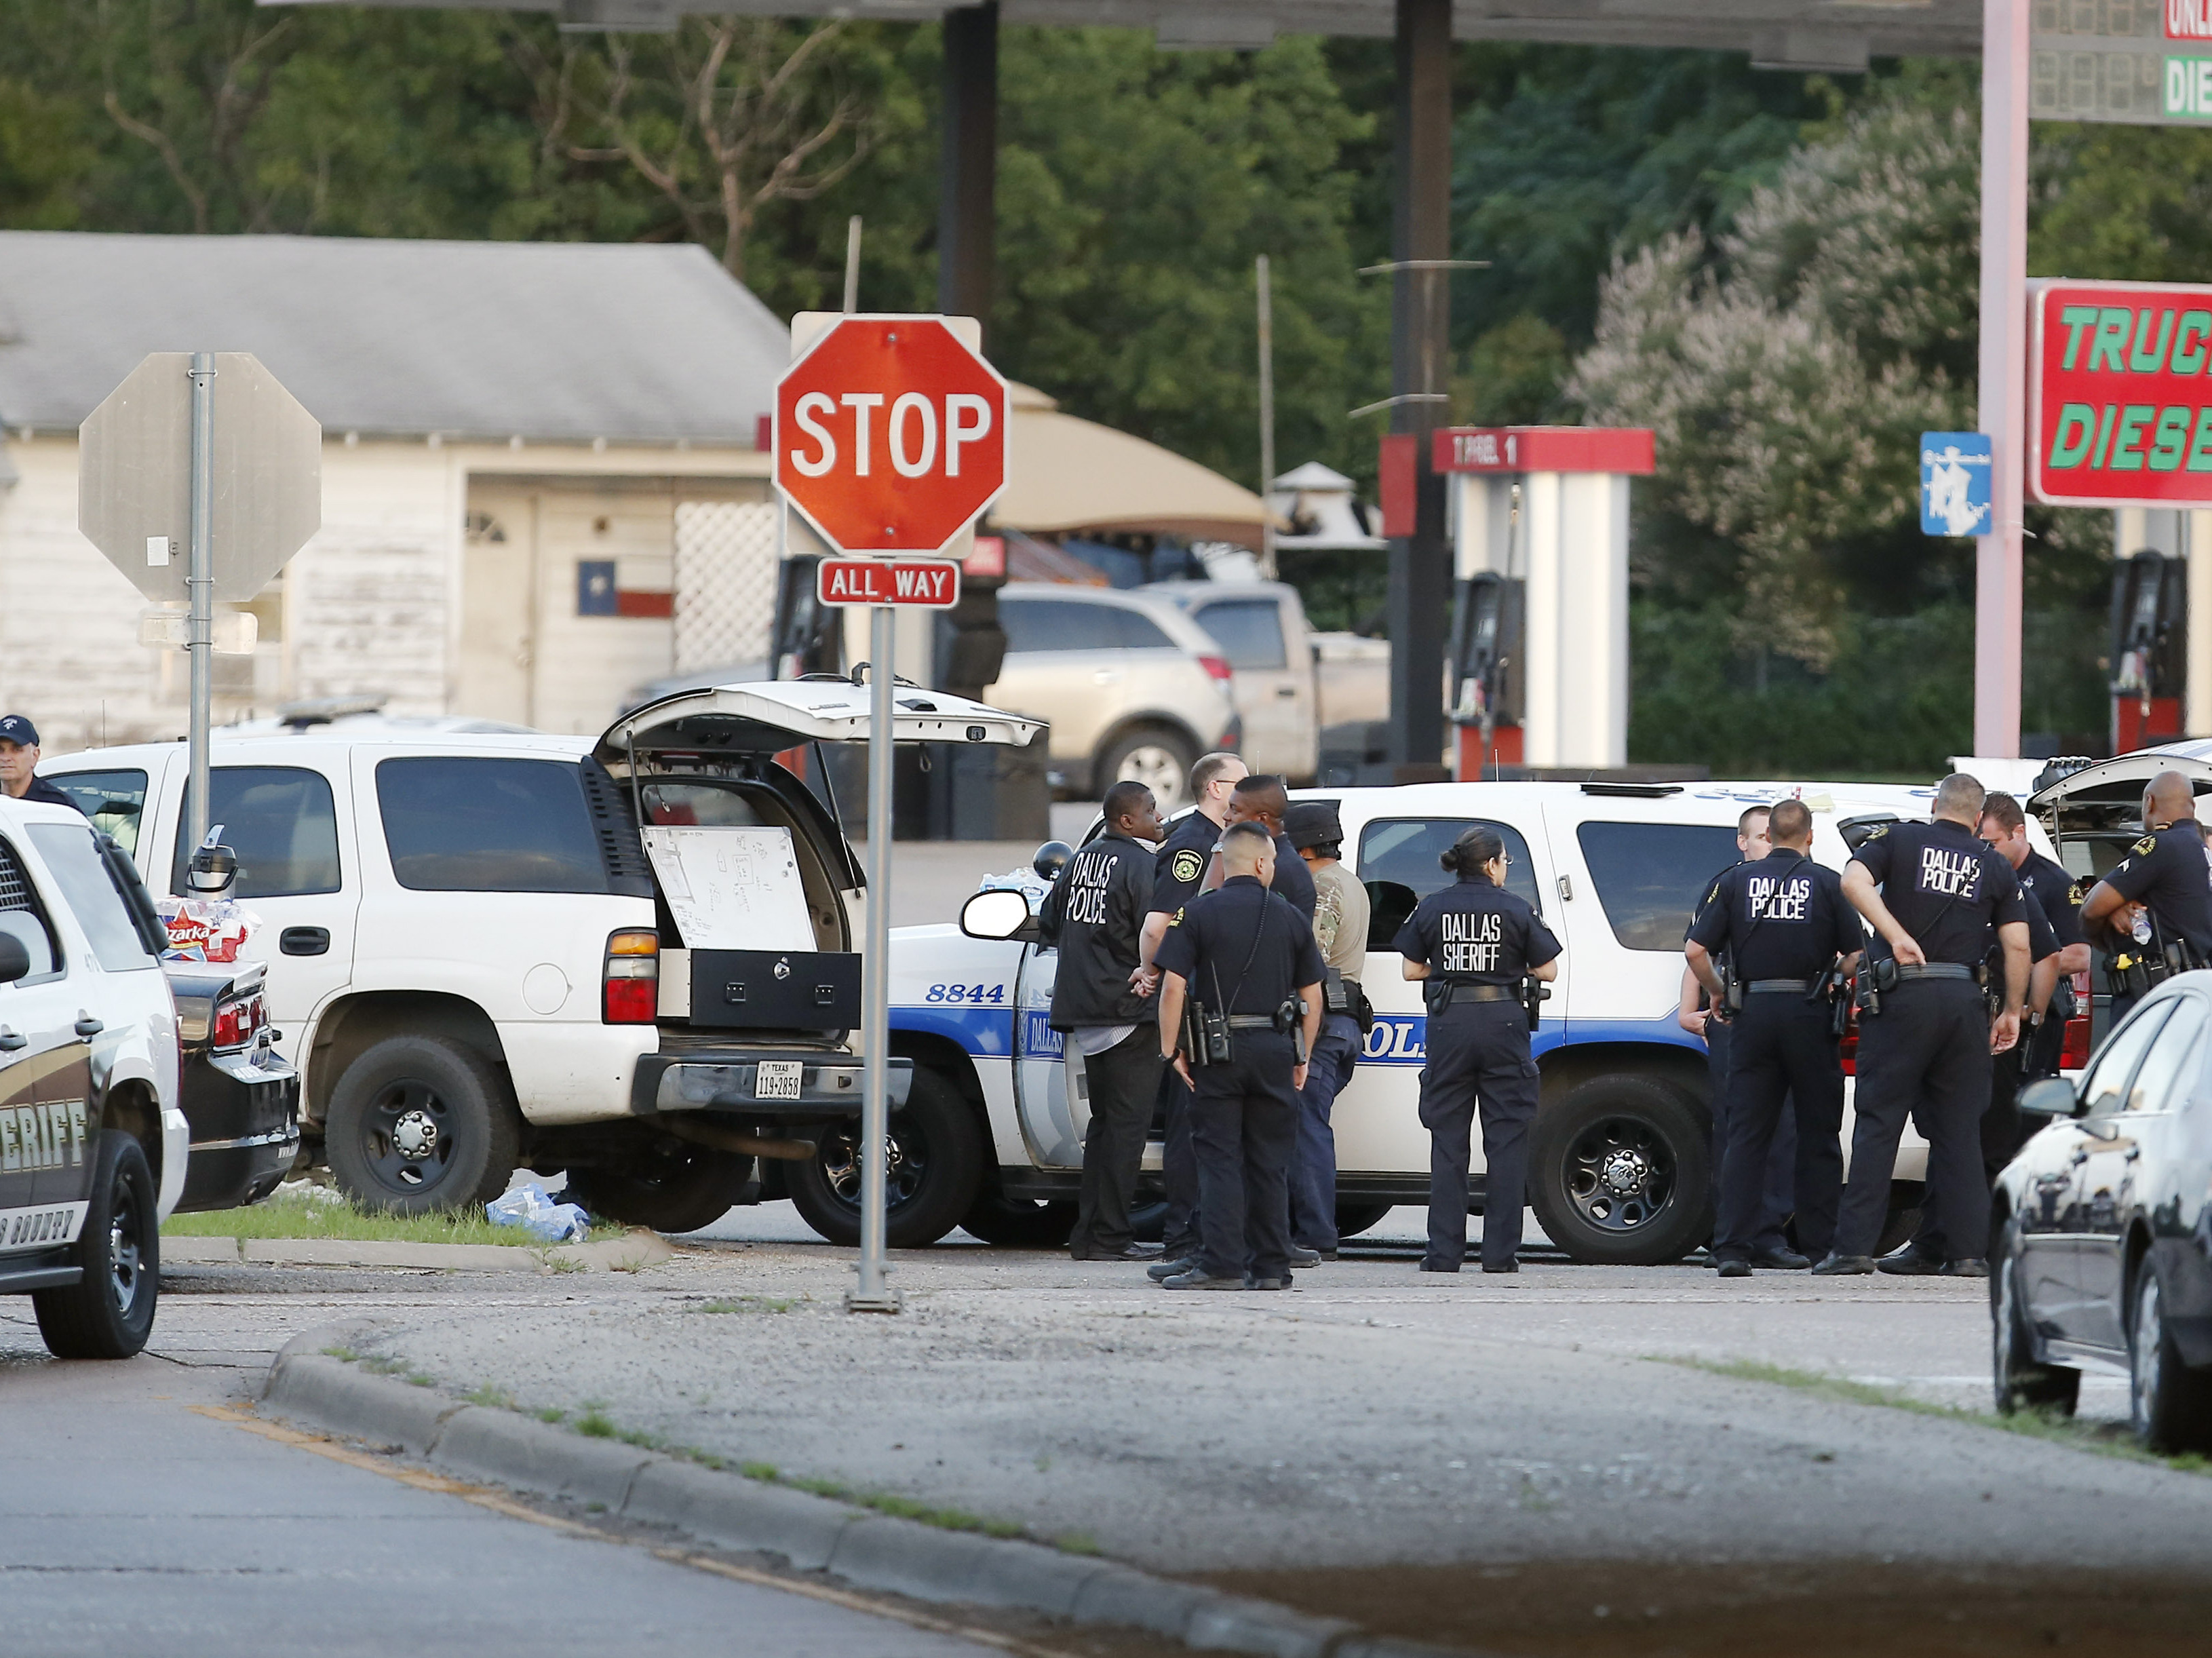 Dallas Police Chief: 'A Blessing' No Officers Hurt In Attack On HQ